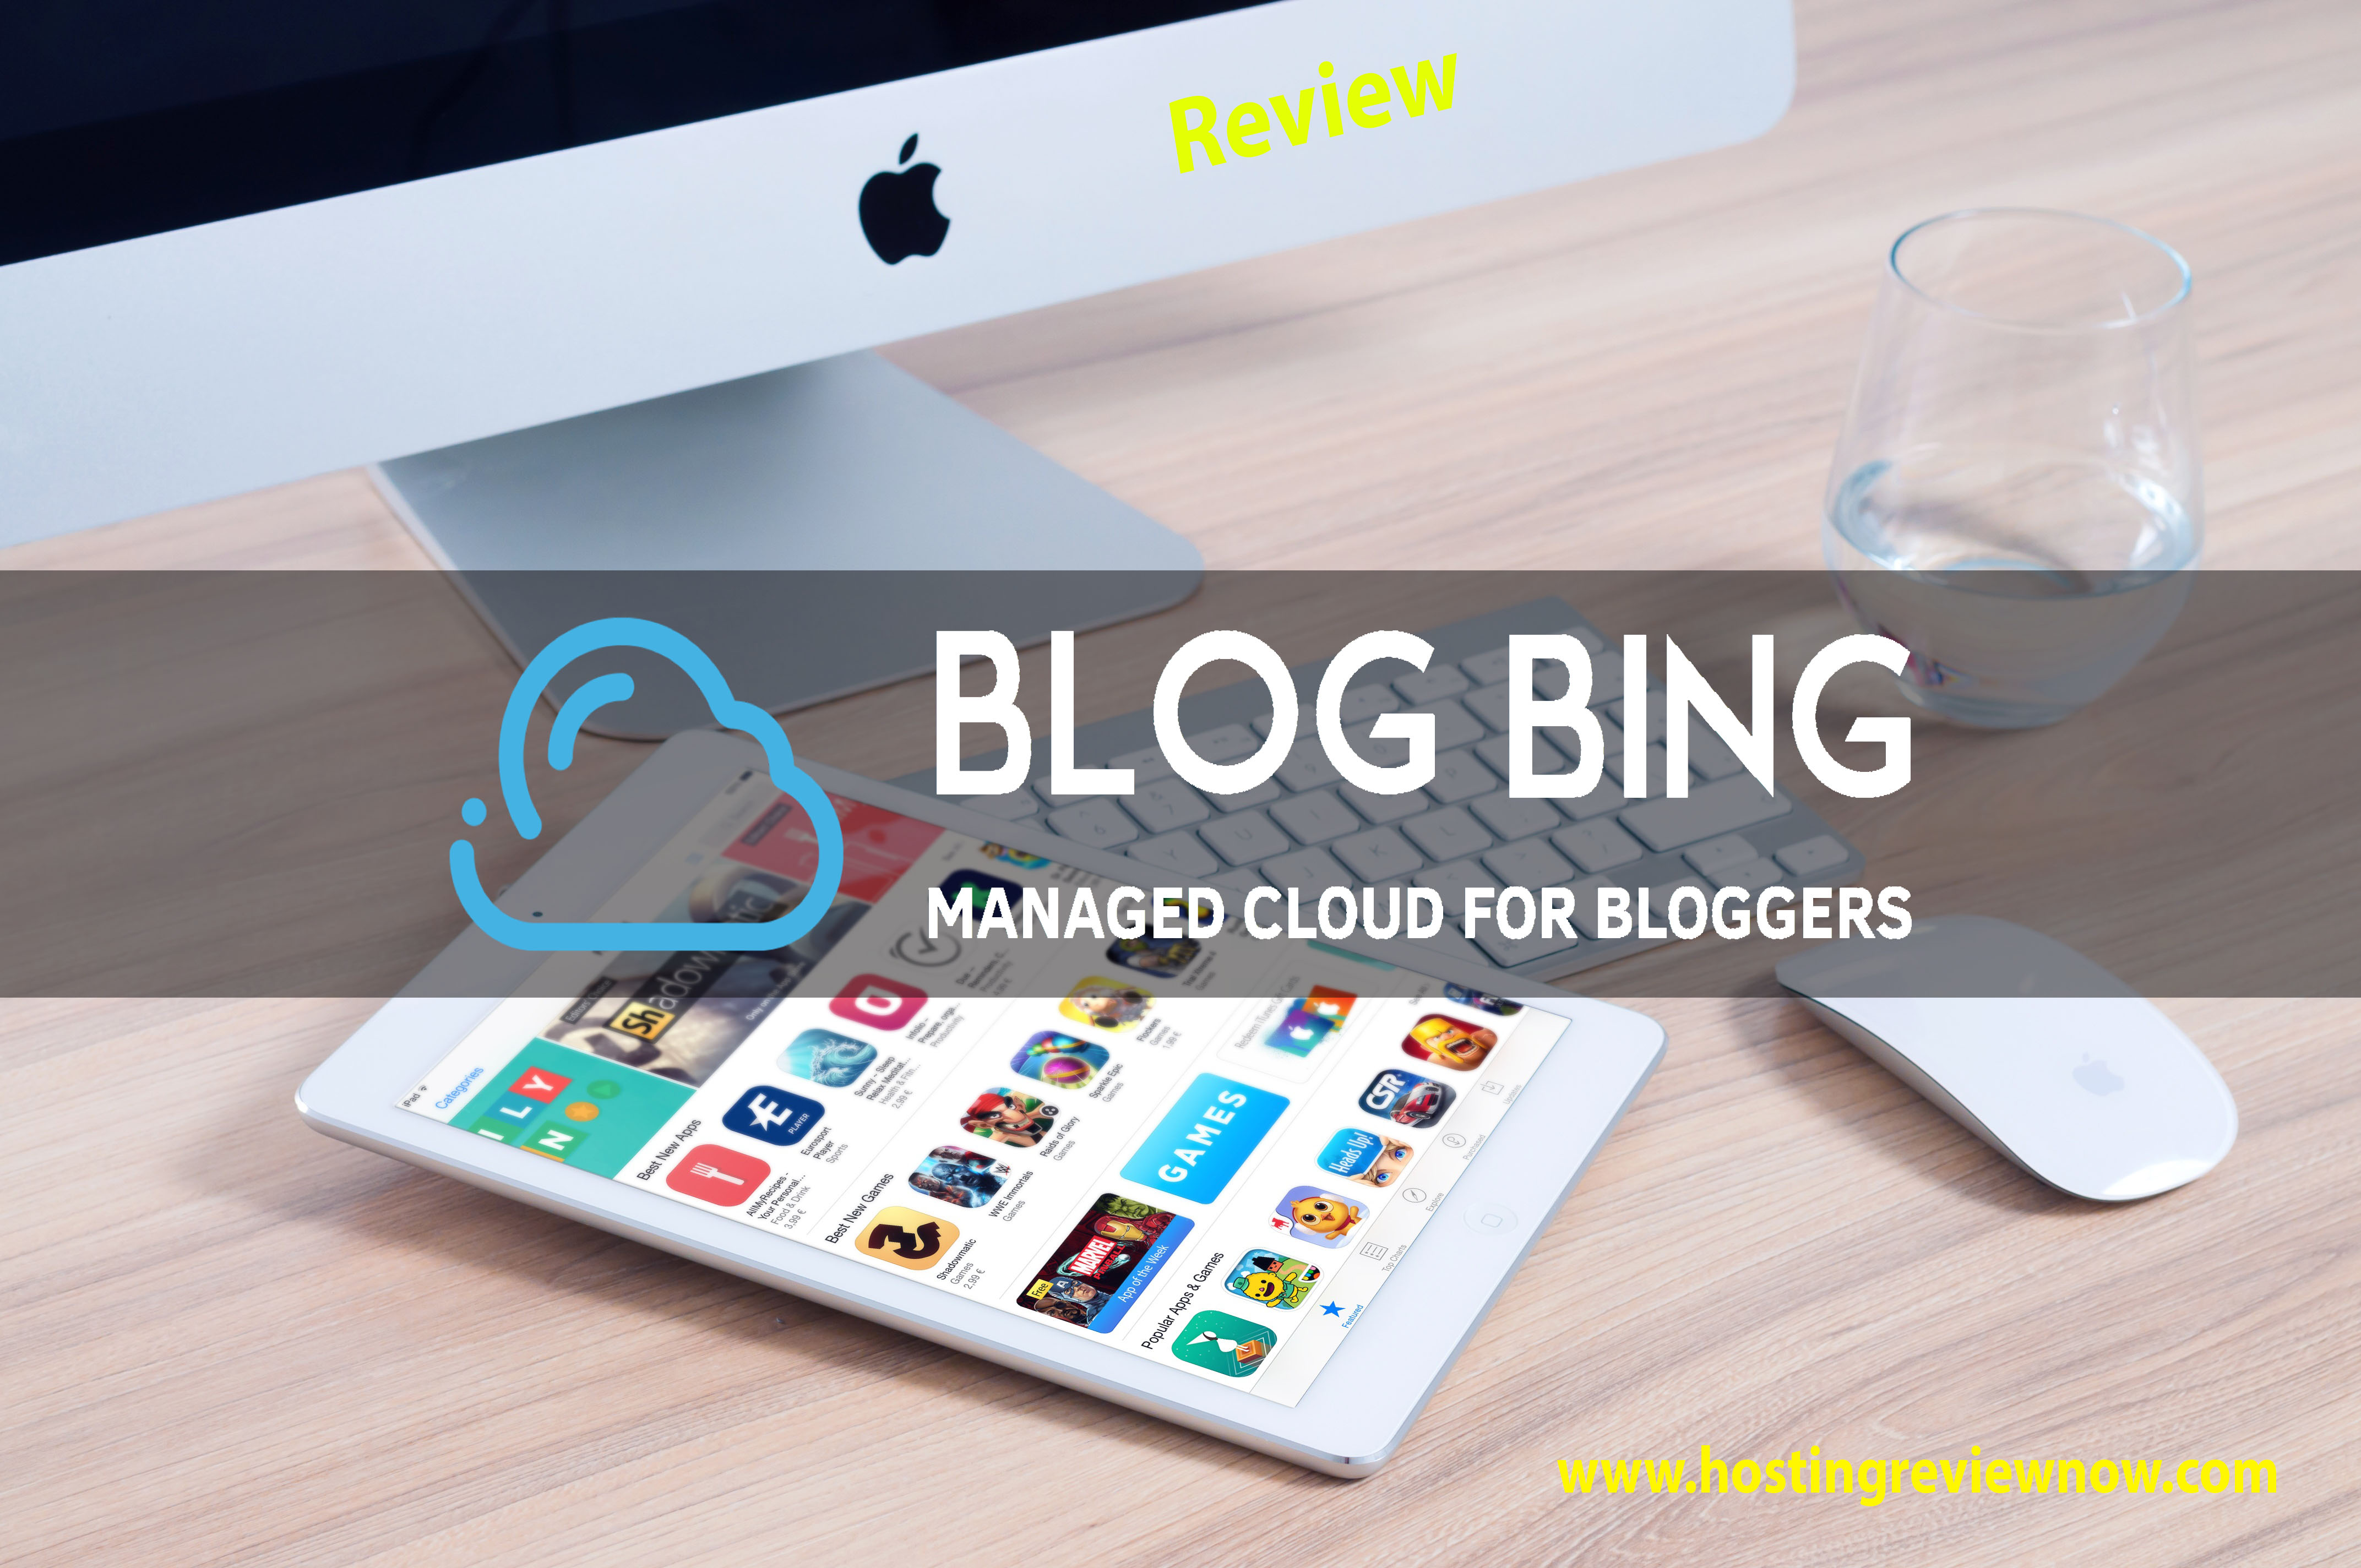 BlogBing Review